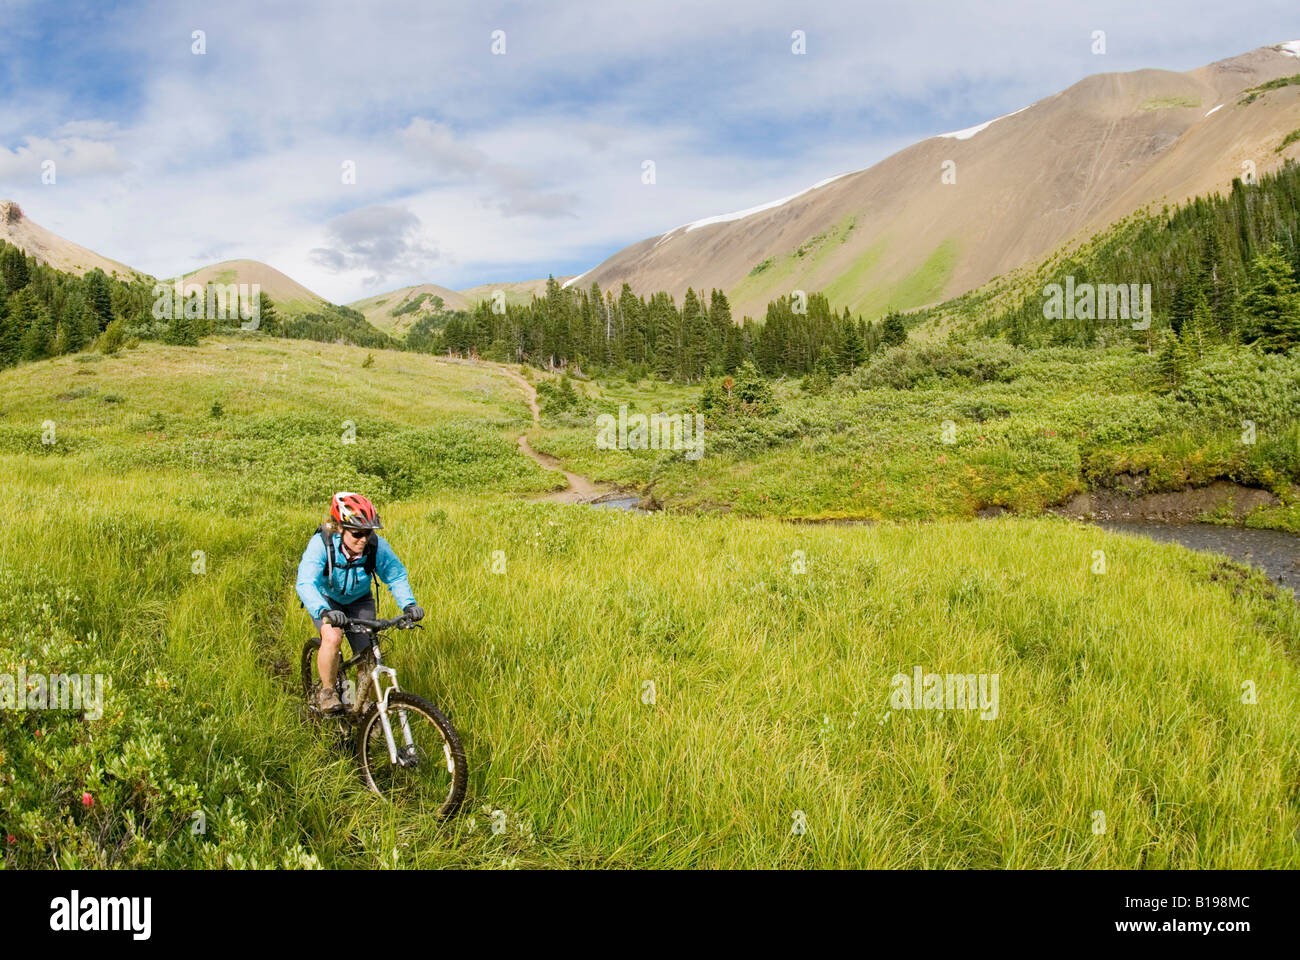 Mountain biker rides down from Windy Pass, Southern Chilcotin Mountains, British Columbia, Canada. Stock Photo